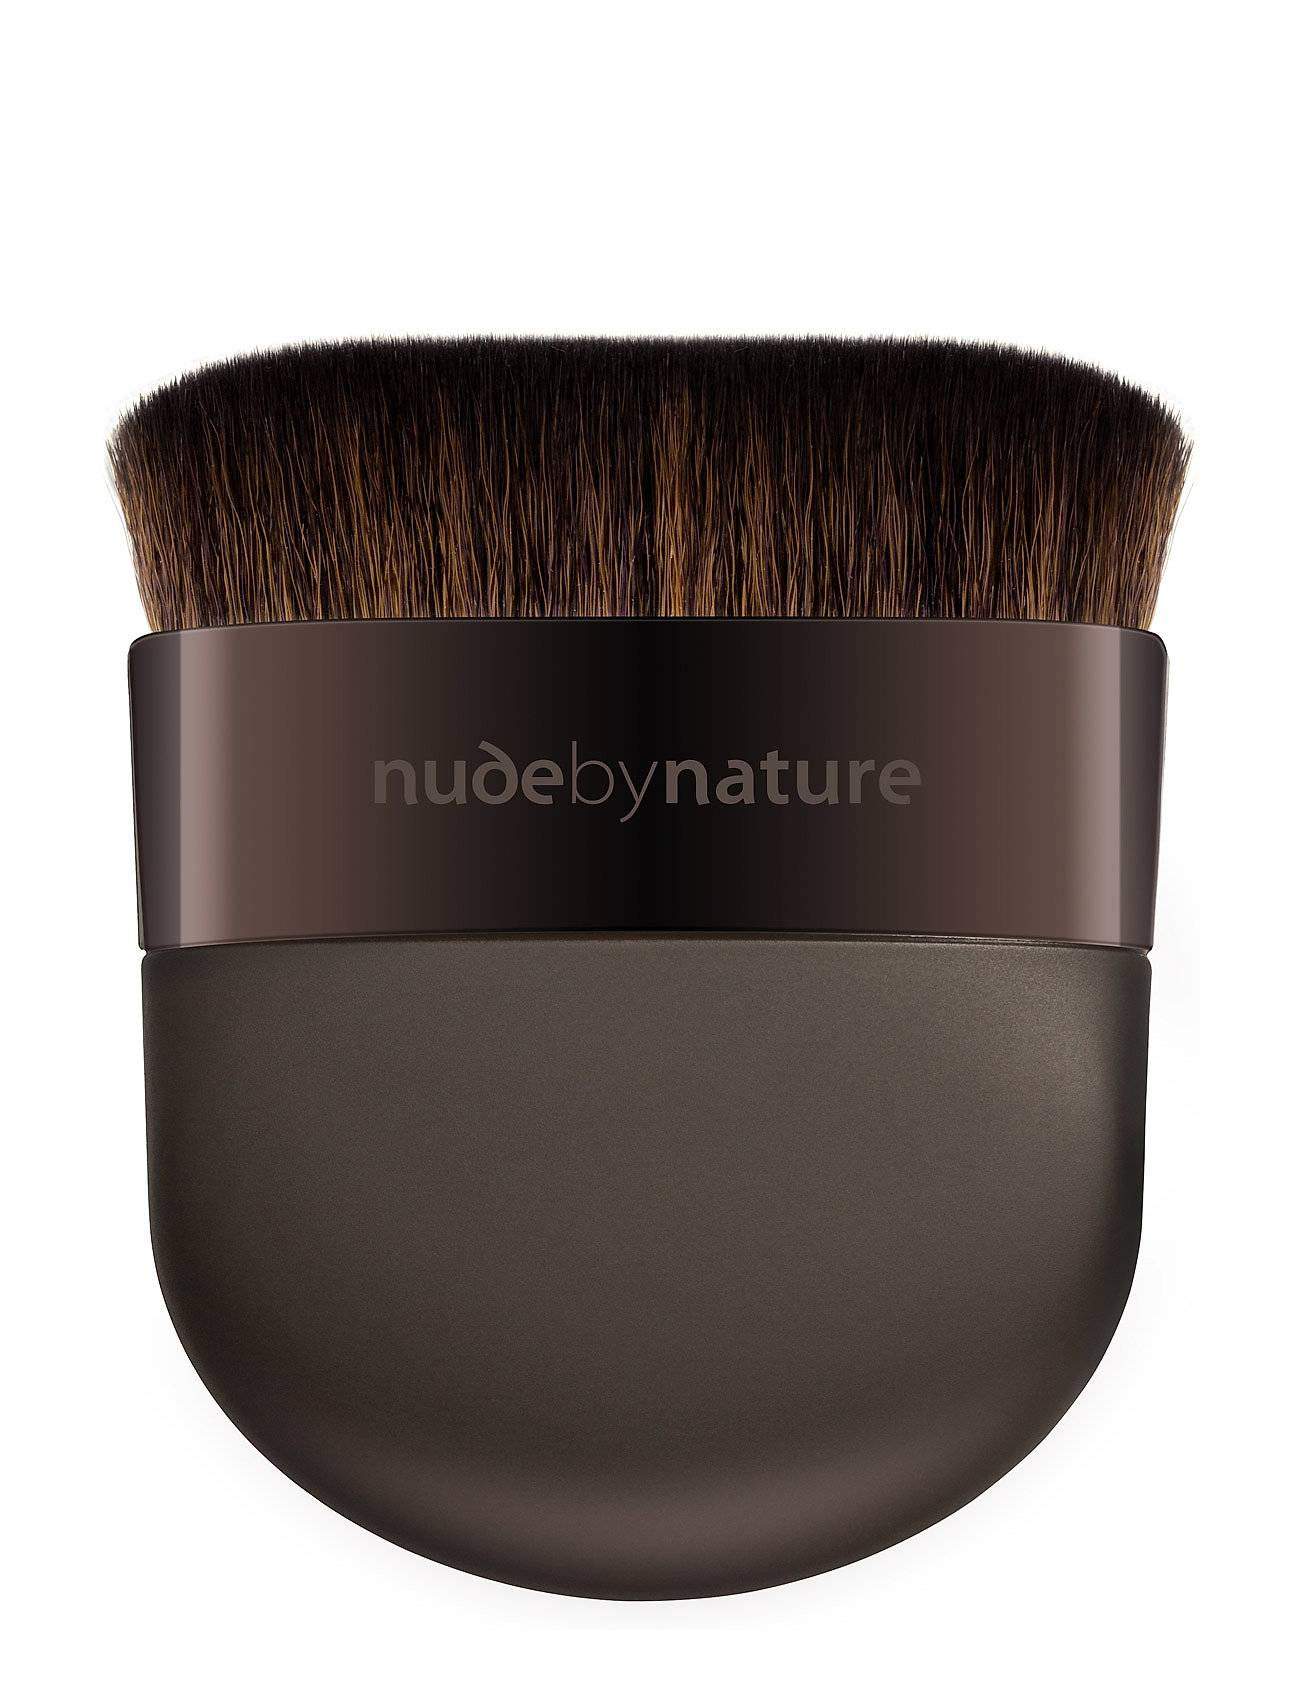 Nude by Nature Brushes 13 Ultimateperfecting Brush Beauty WOMEN Makeup Makeup Brushes Face Brushes Nude Nude By Nature